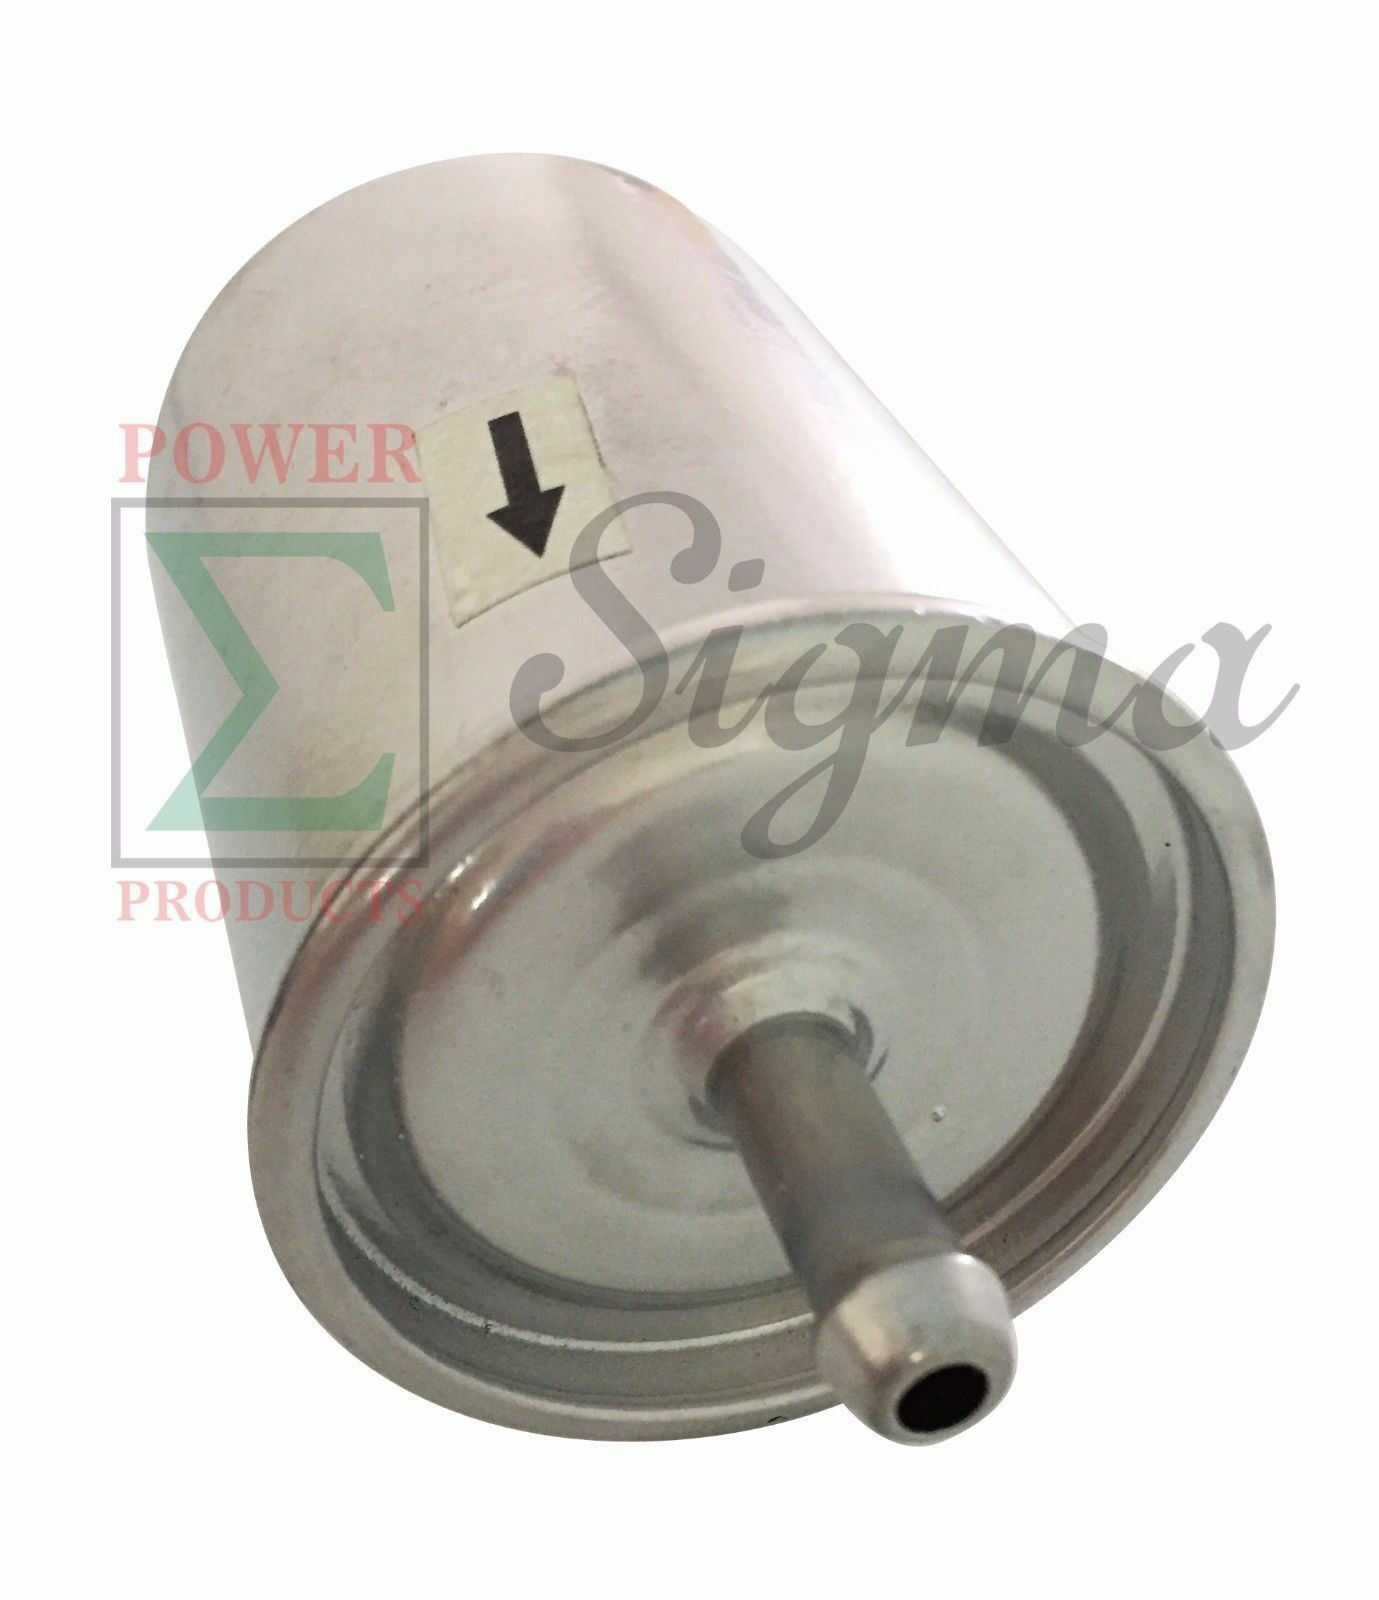 hight resolution of fuel filter fits bosch kohler ch23 ch26 cv18 lh775 745efi 460efi engines 5 16